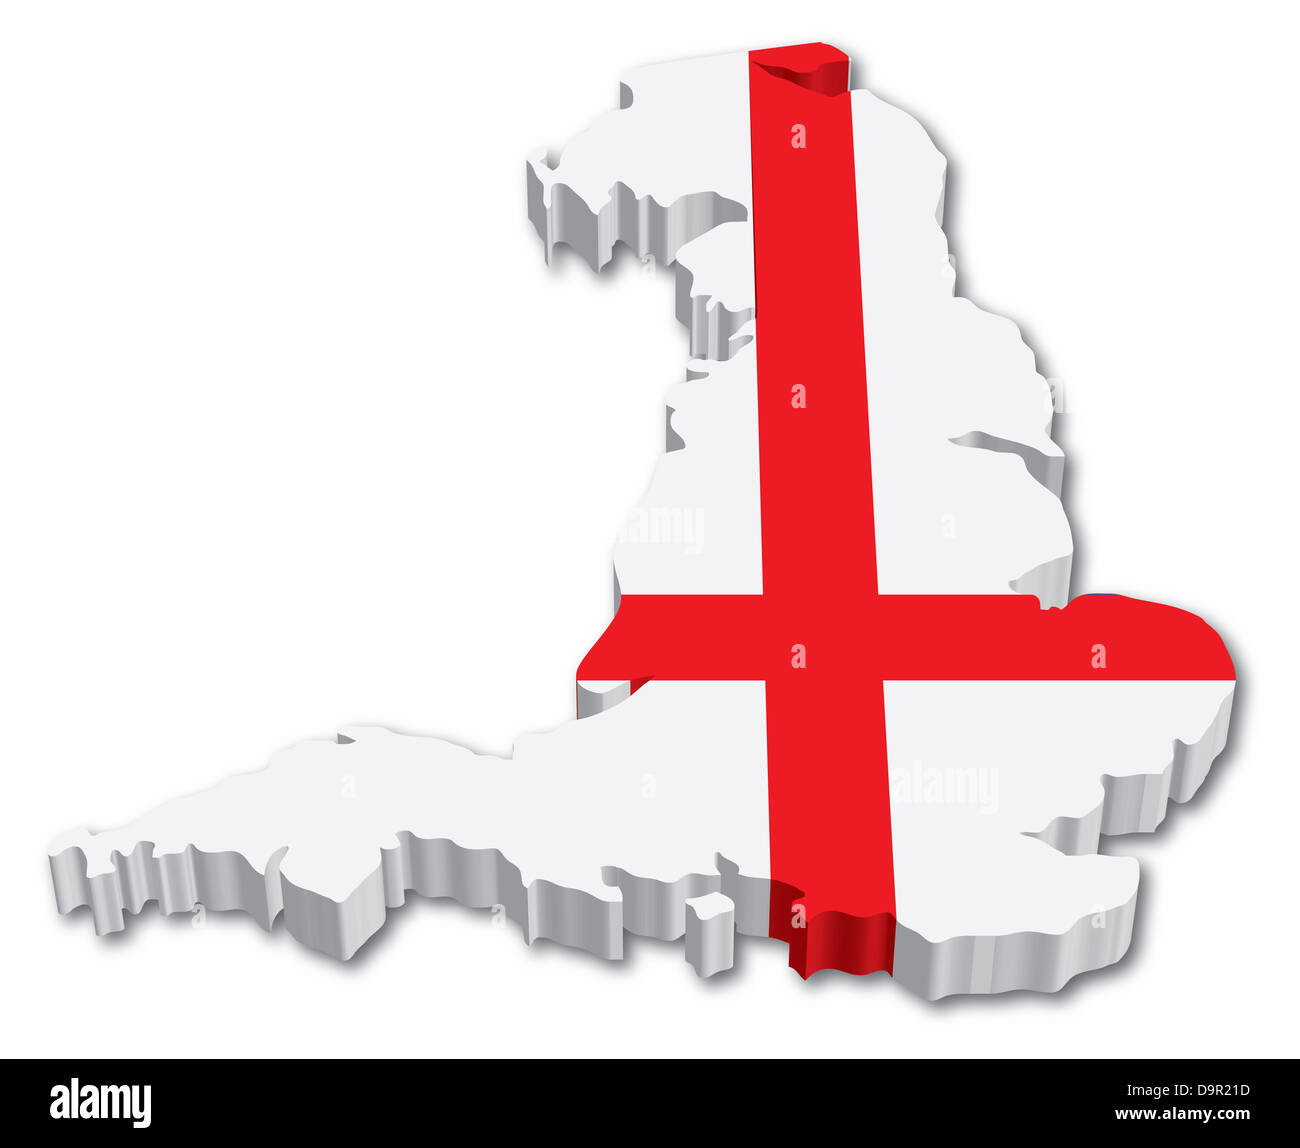 3d Map Of England.3d England Map With Flag Illustration On White Background Stock